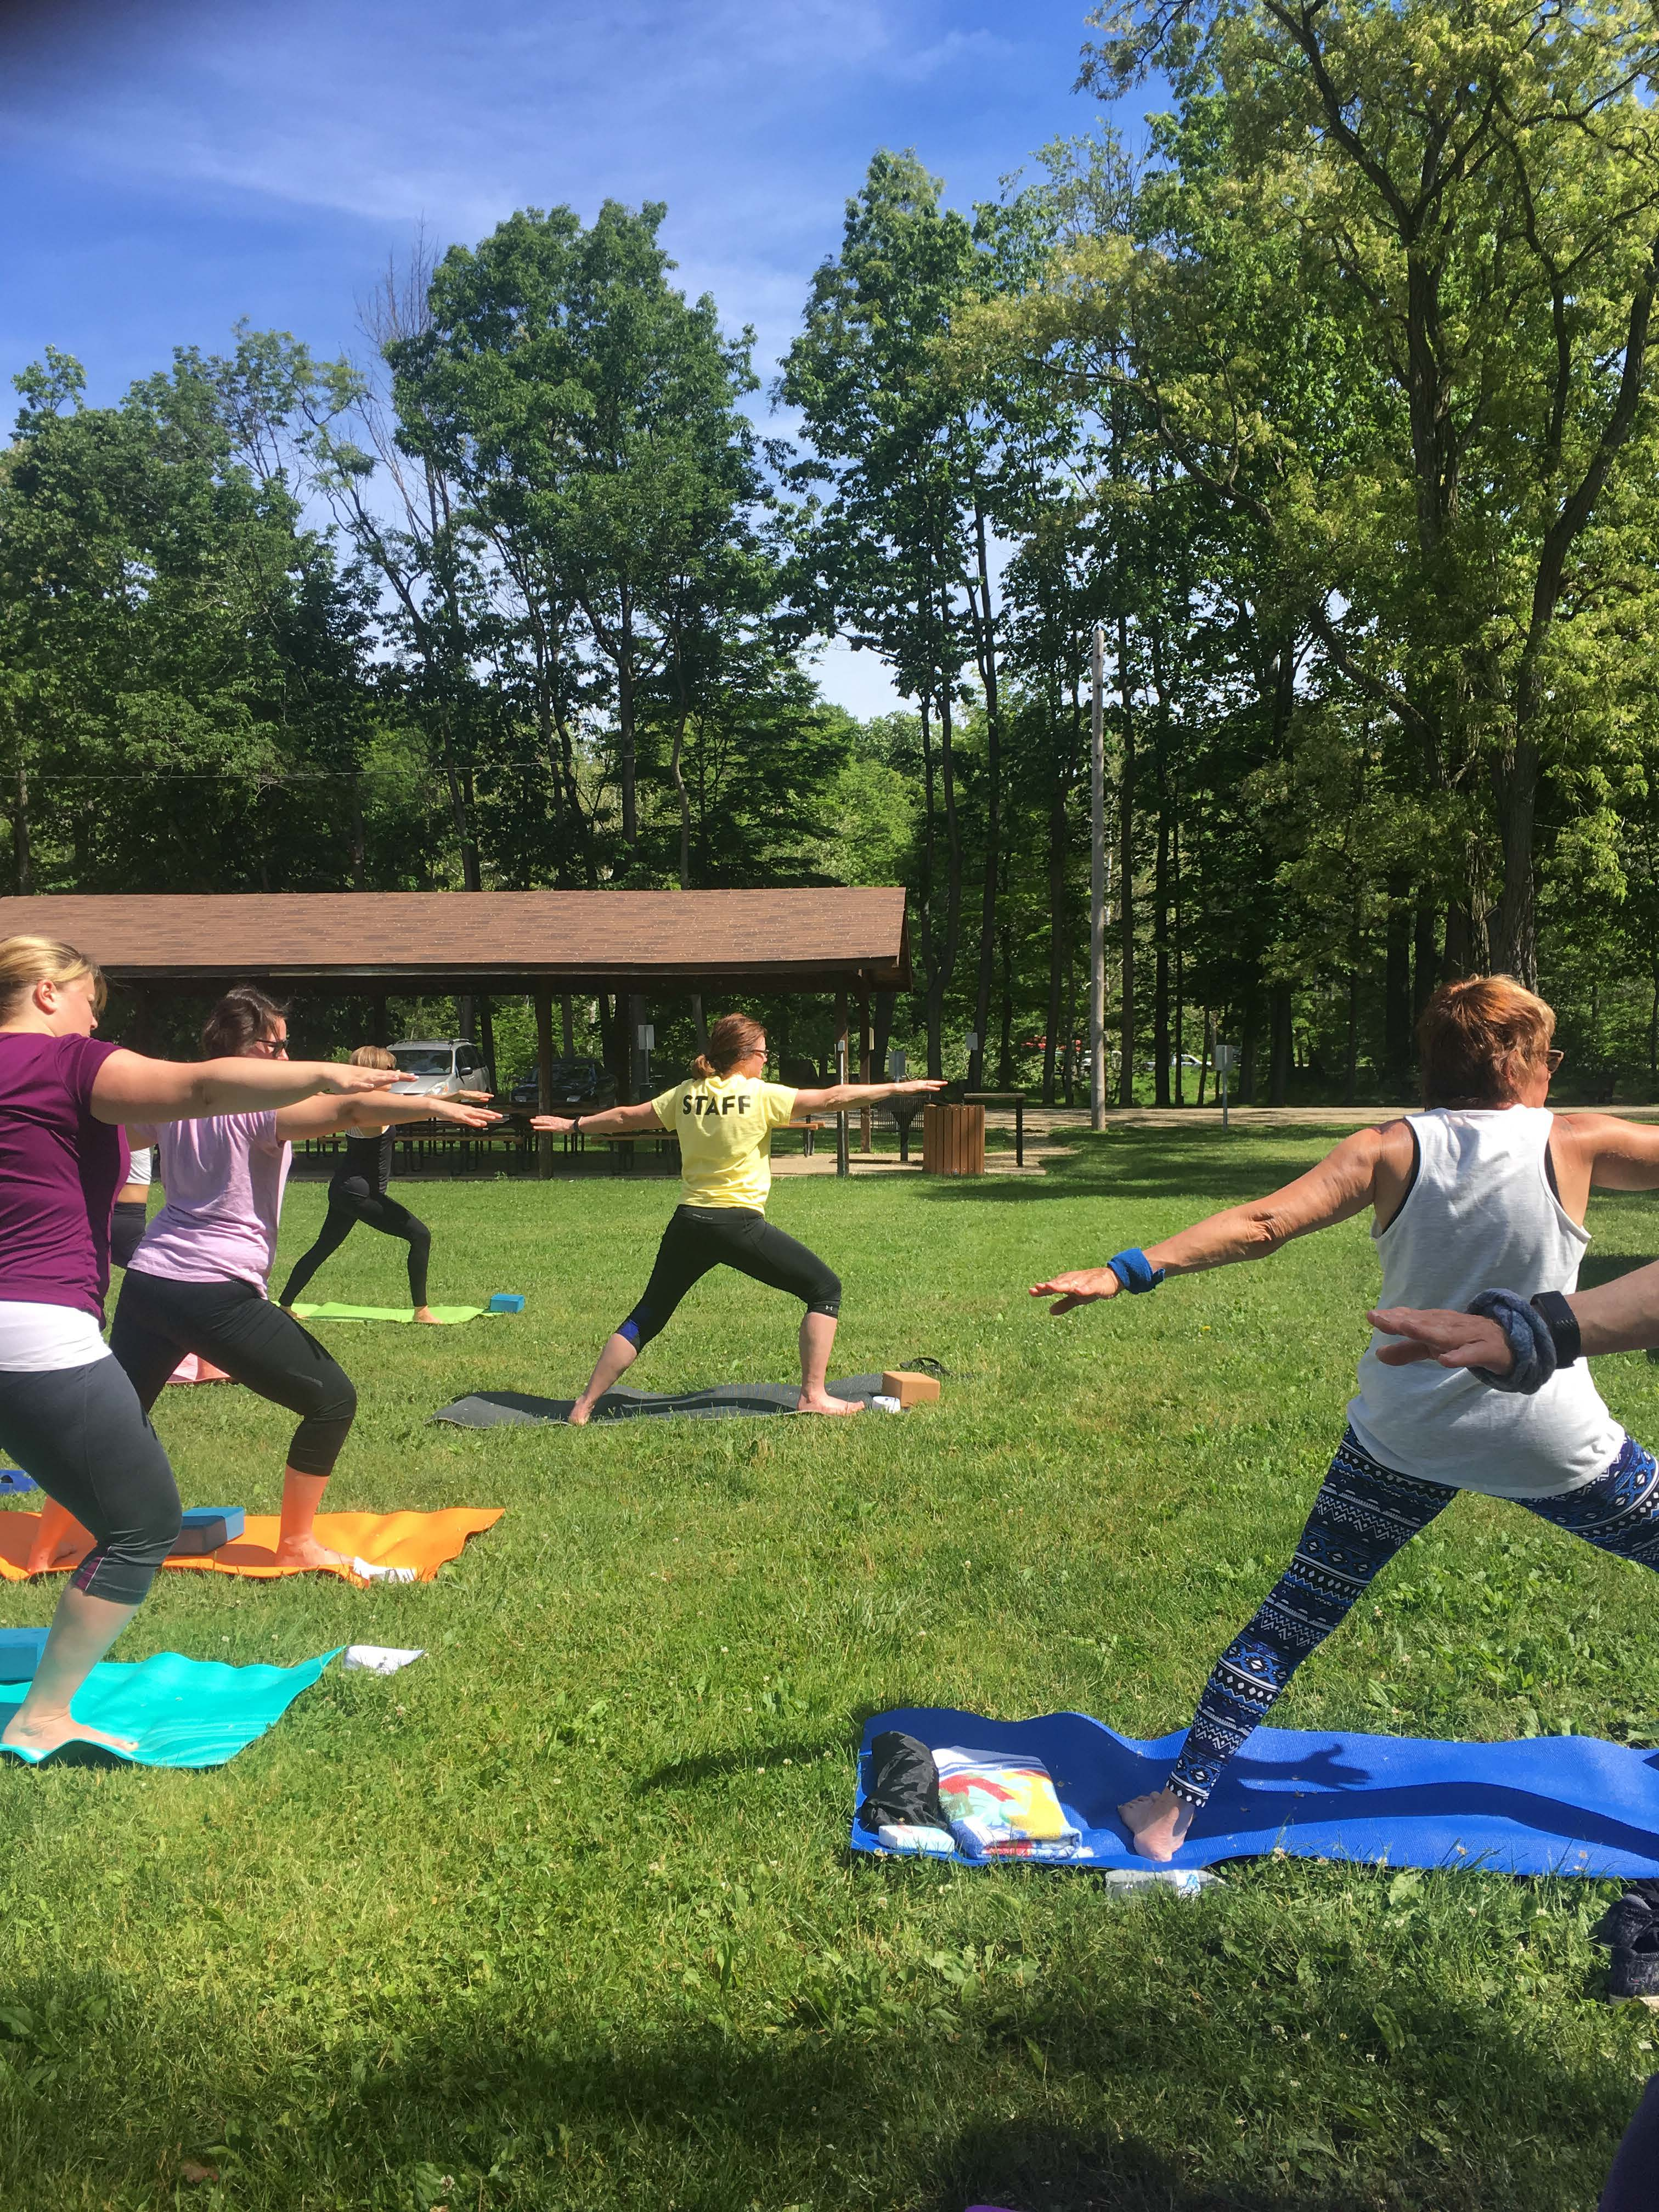 Yoga class in pose at Harpersfield Park